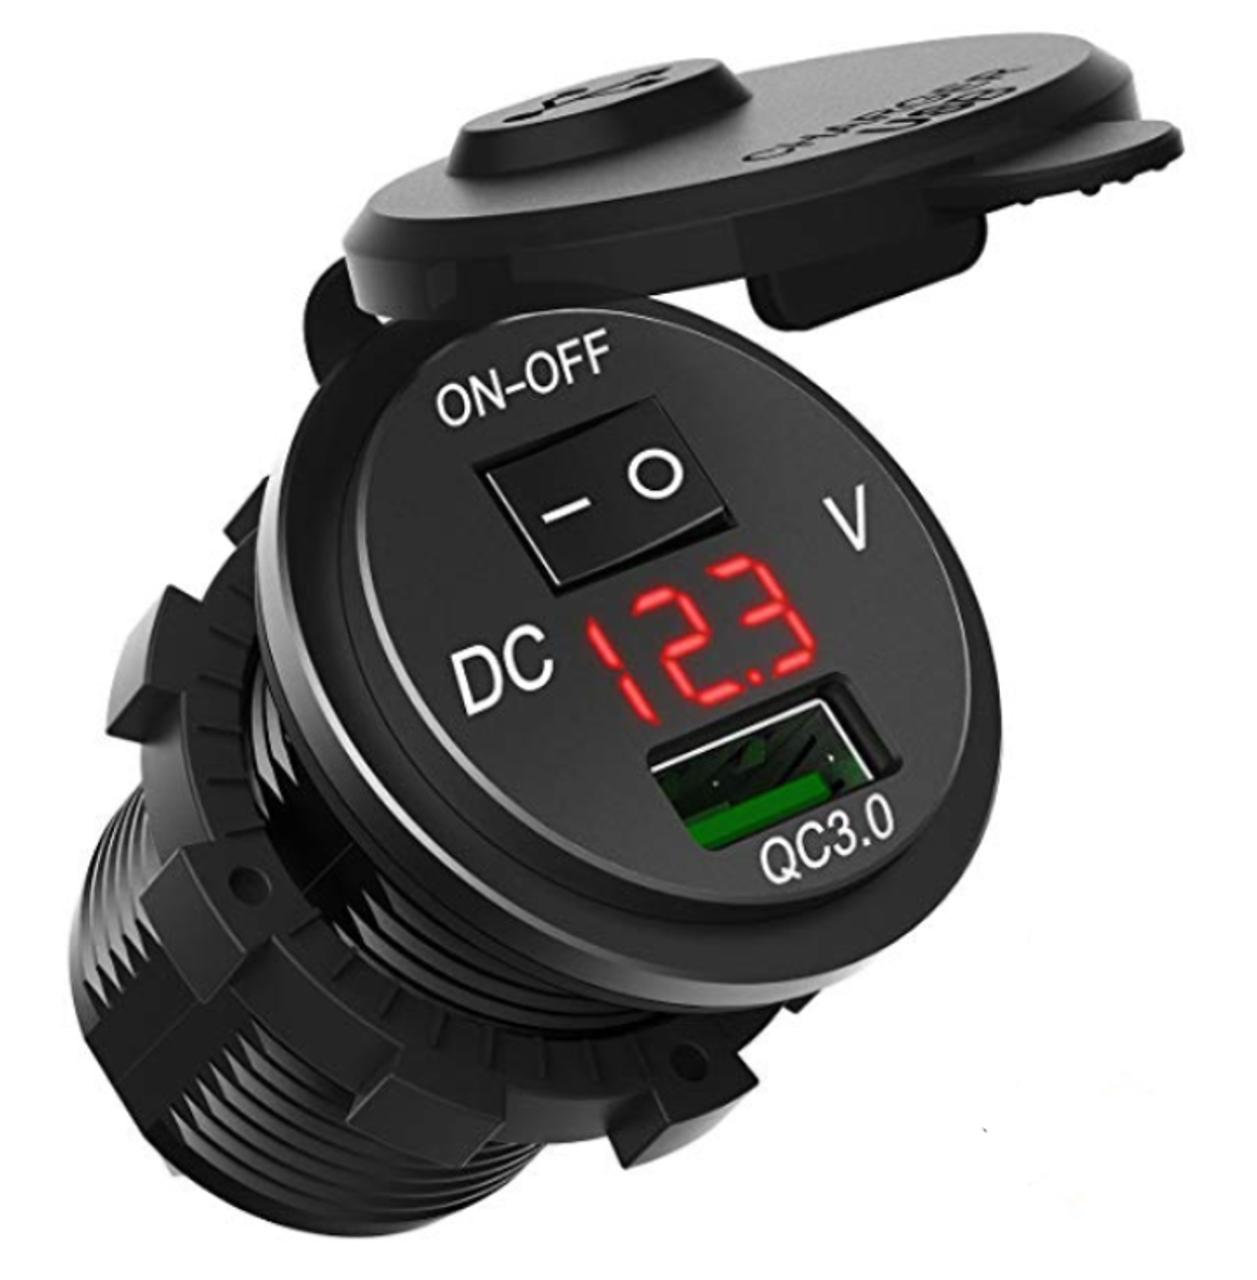 5 Volts DC Output Panel Mount 12 Volt Dual Port USB Power Charger for Boats